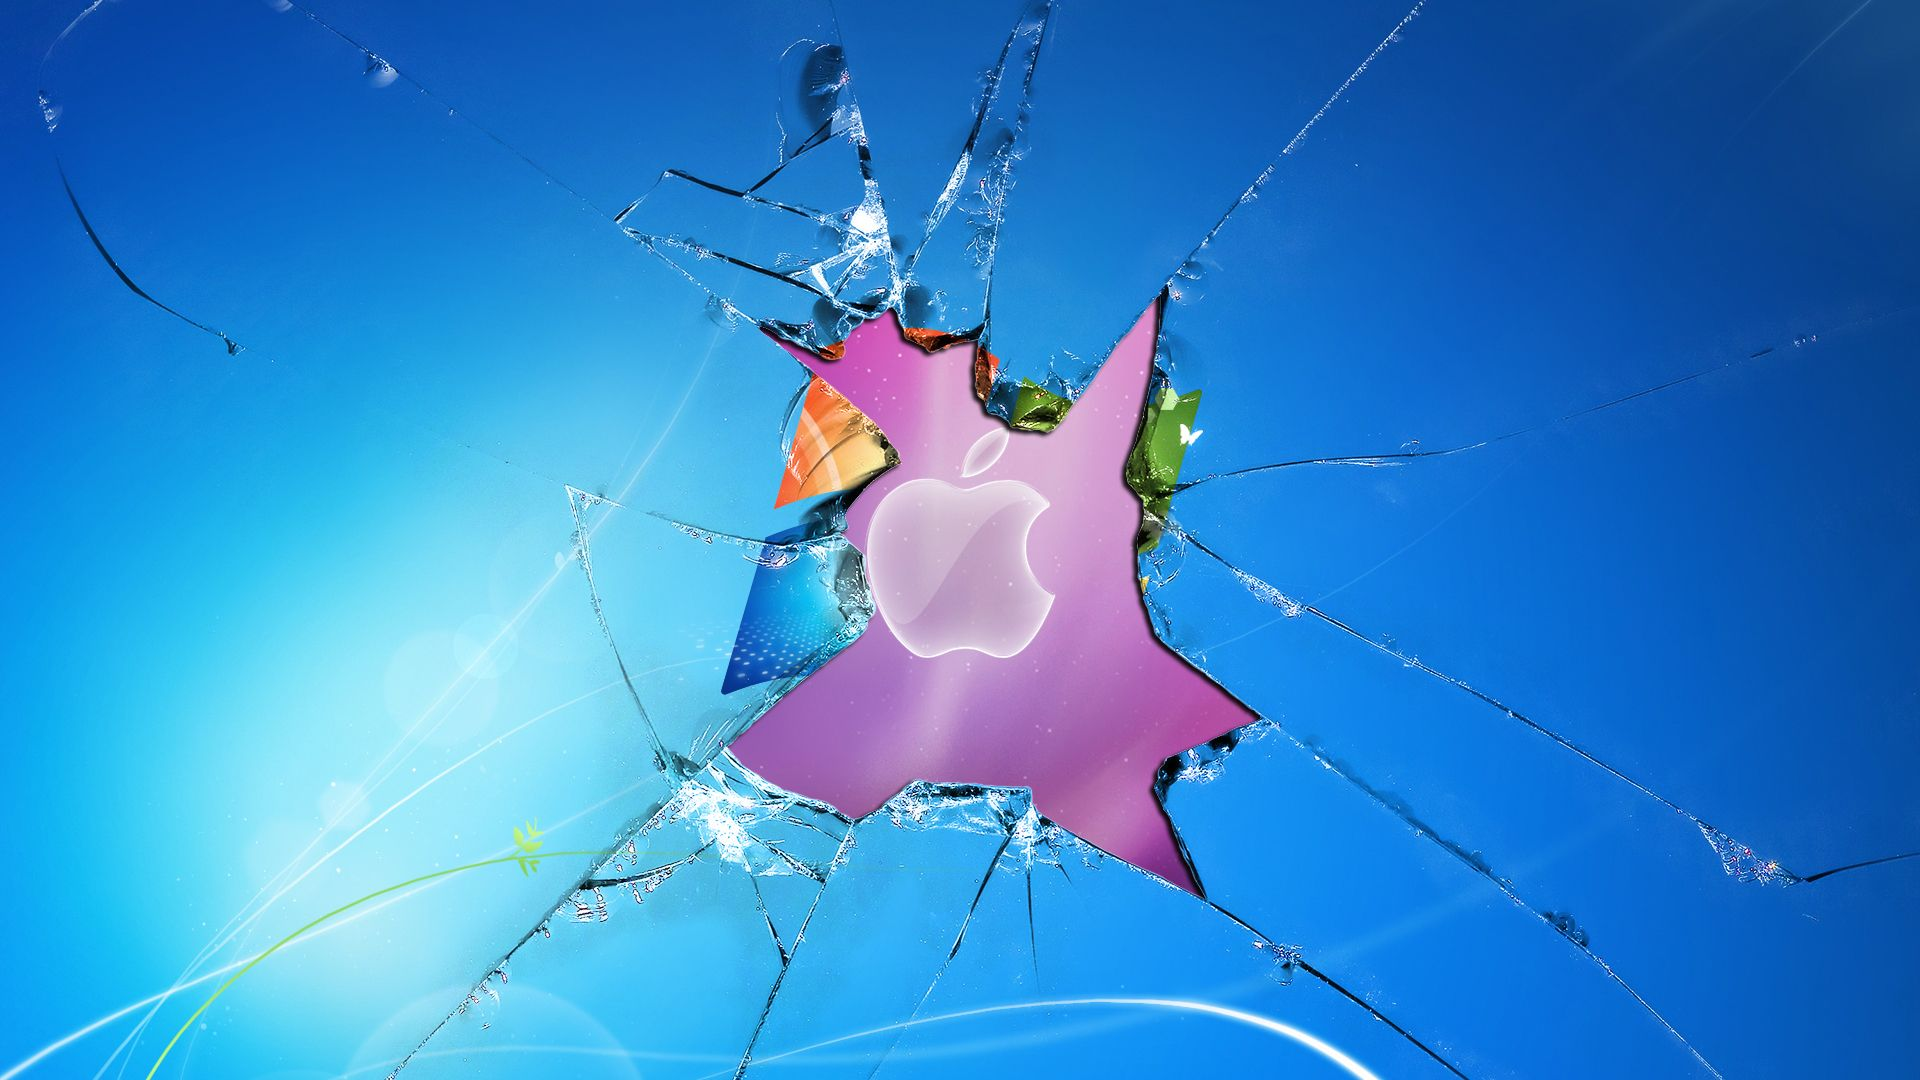 image result for broken window desktop background